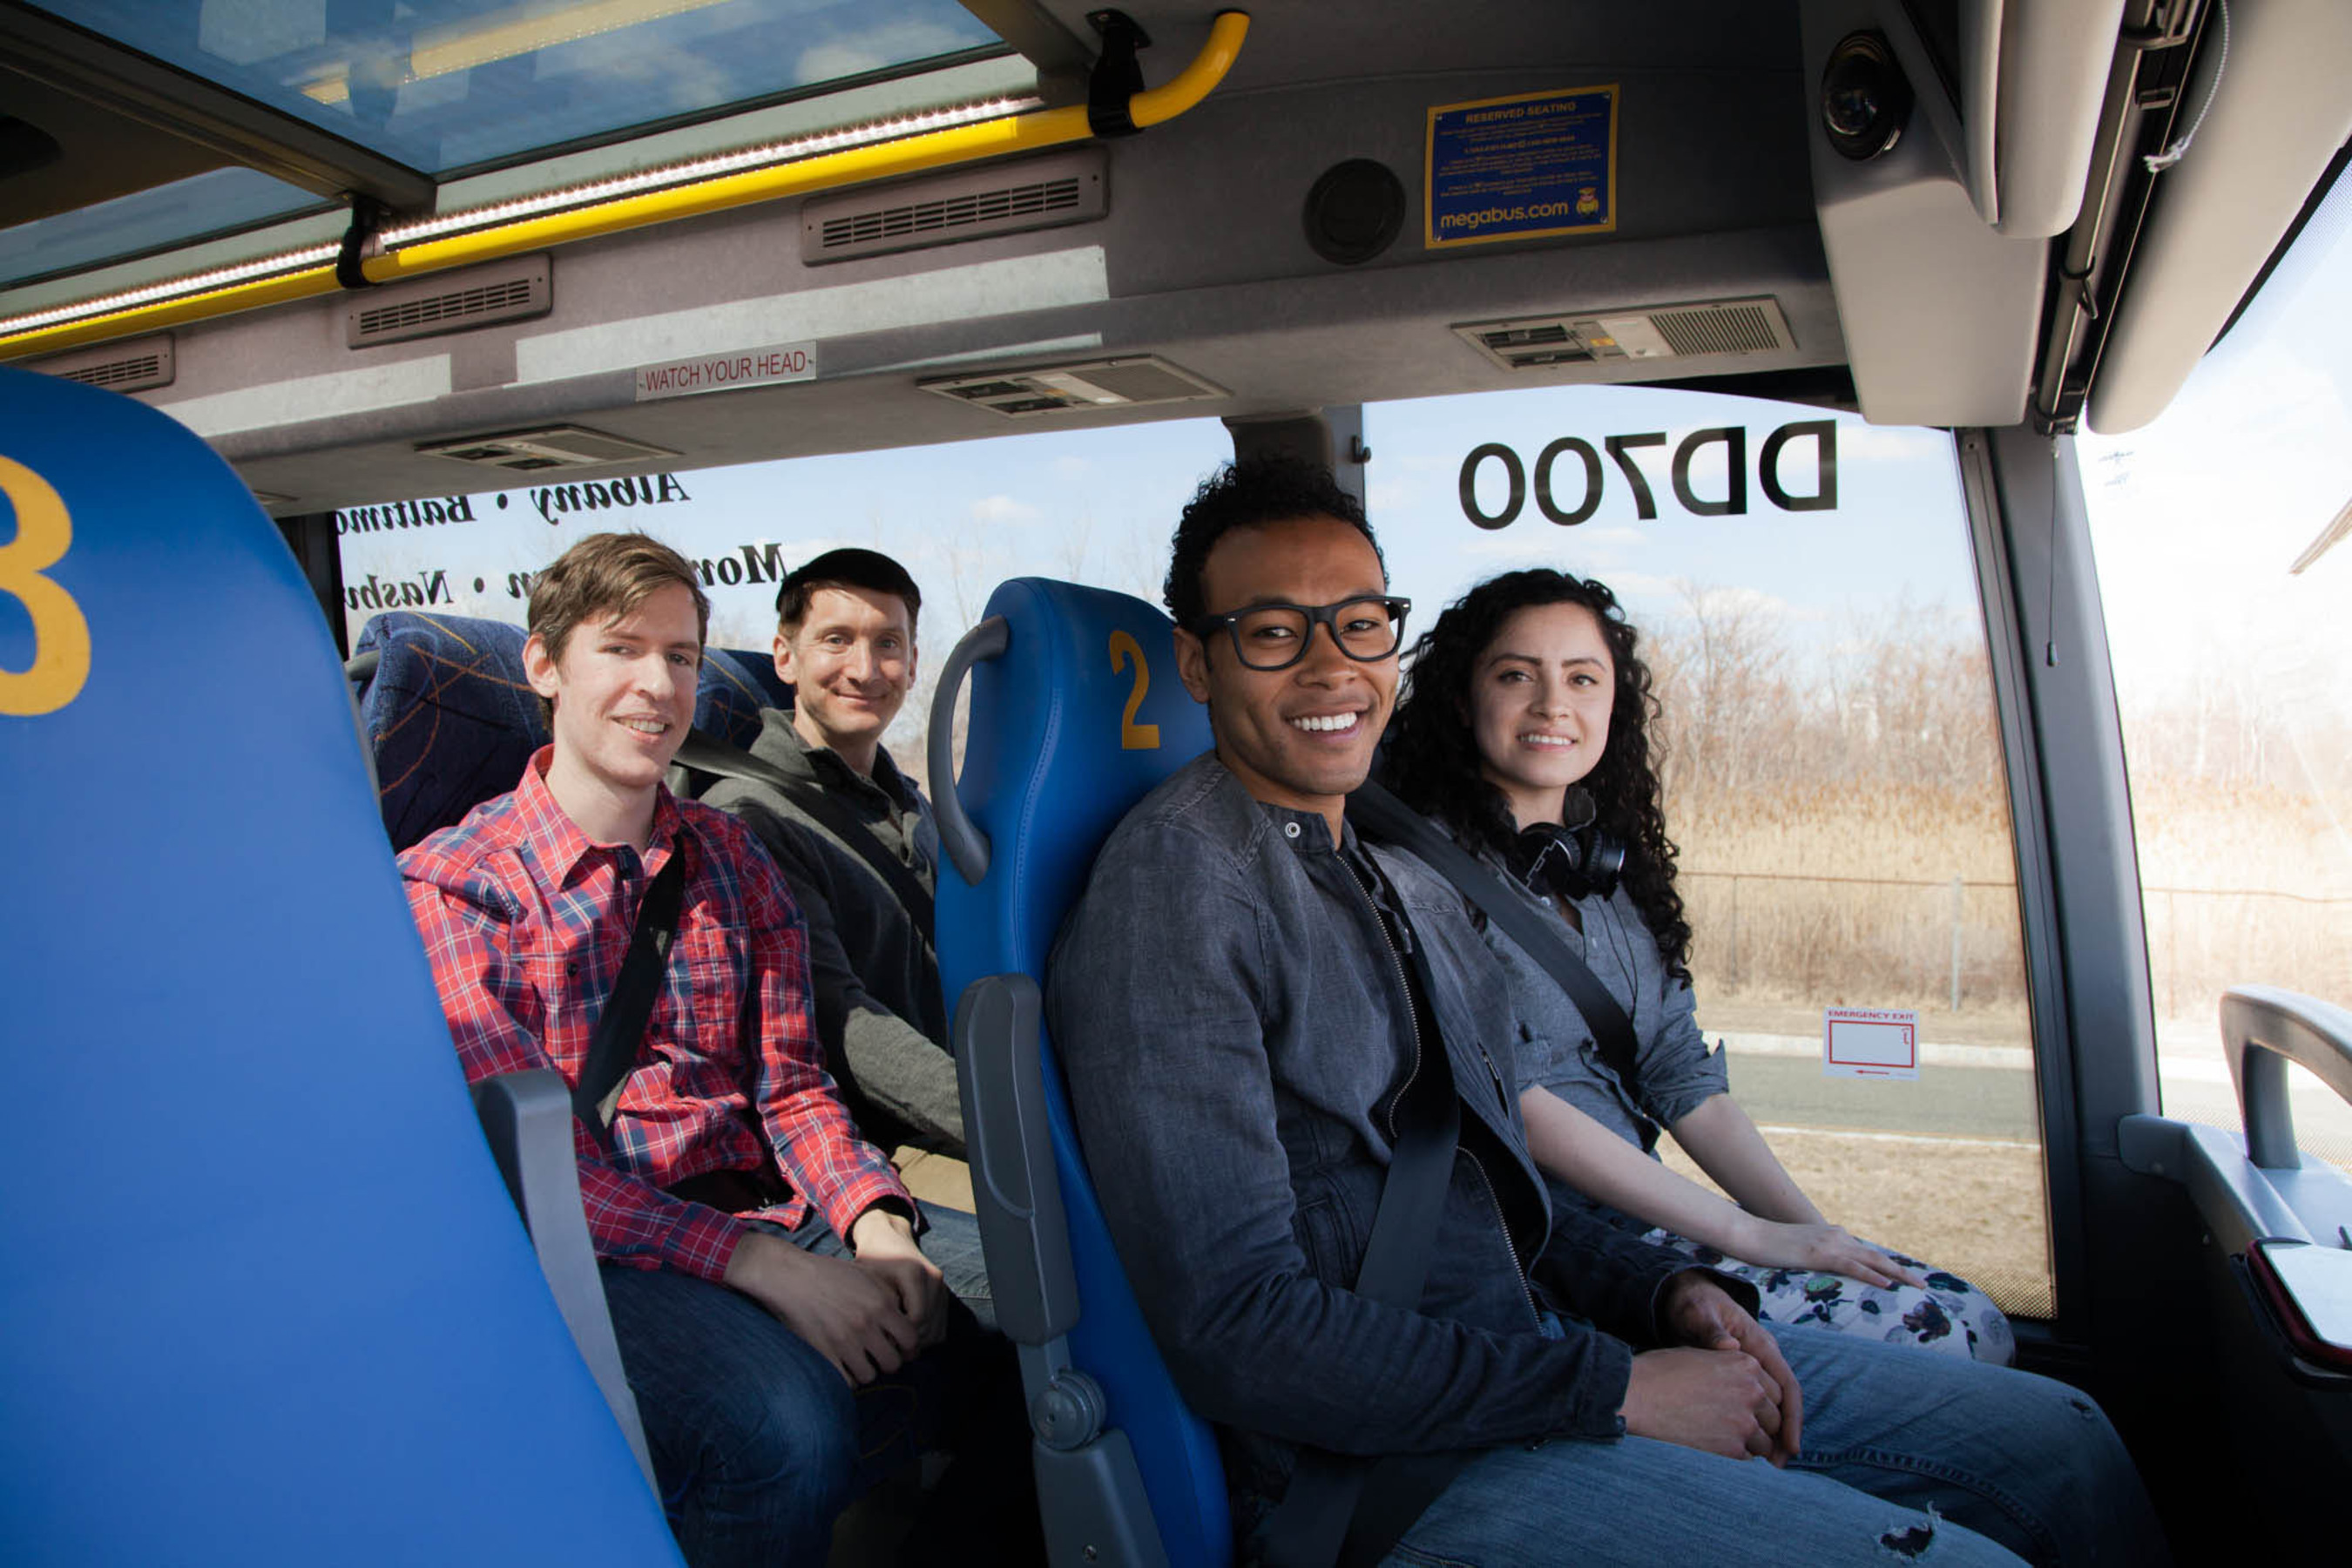 Megabus.com expands popular Reserved Seating program to 20 seats for travel September 8 and beyond